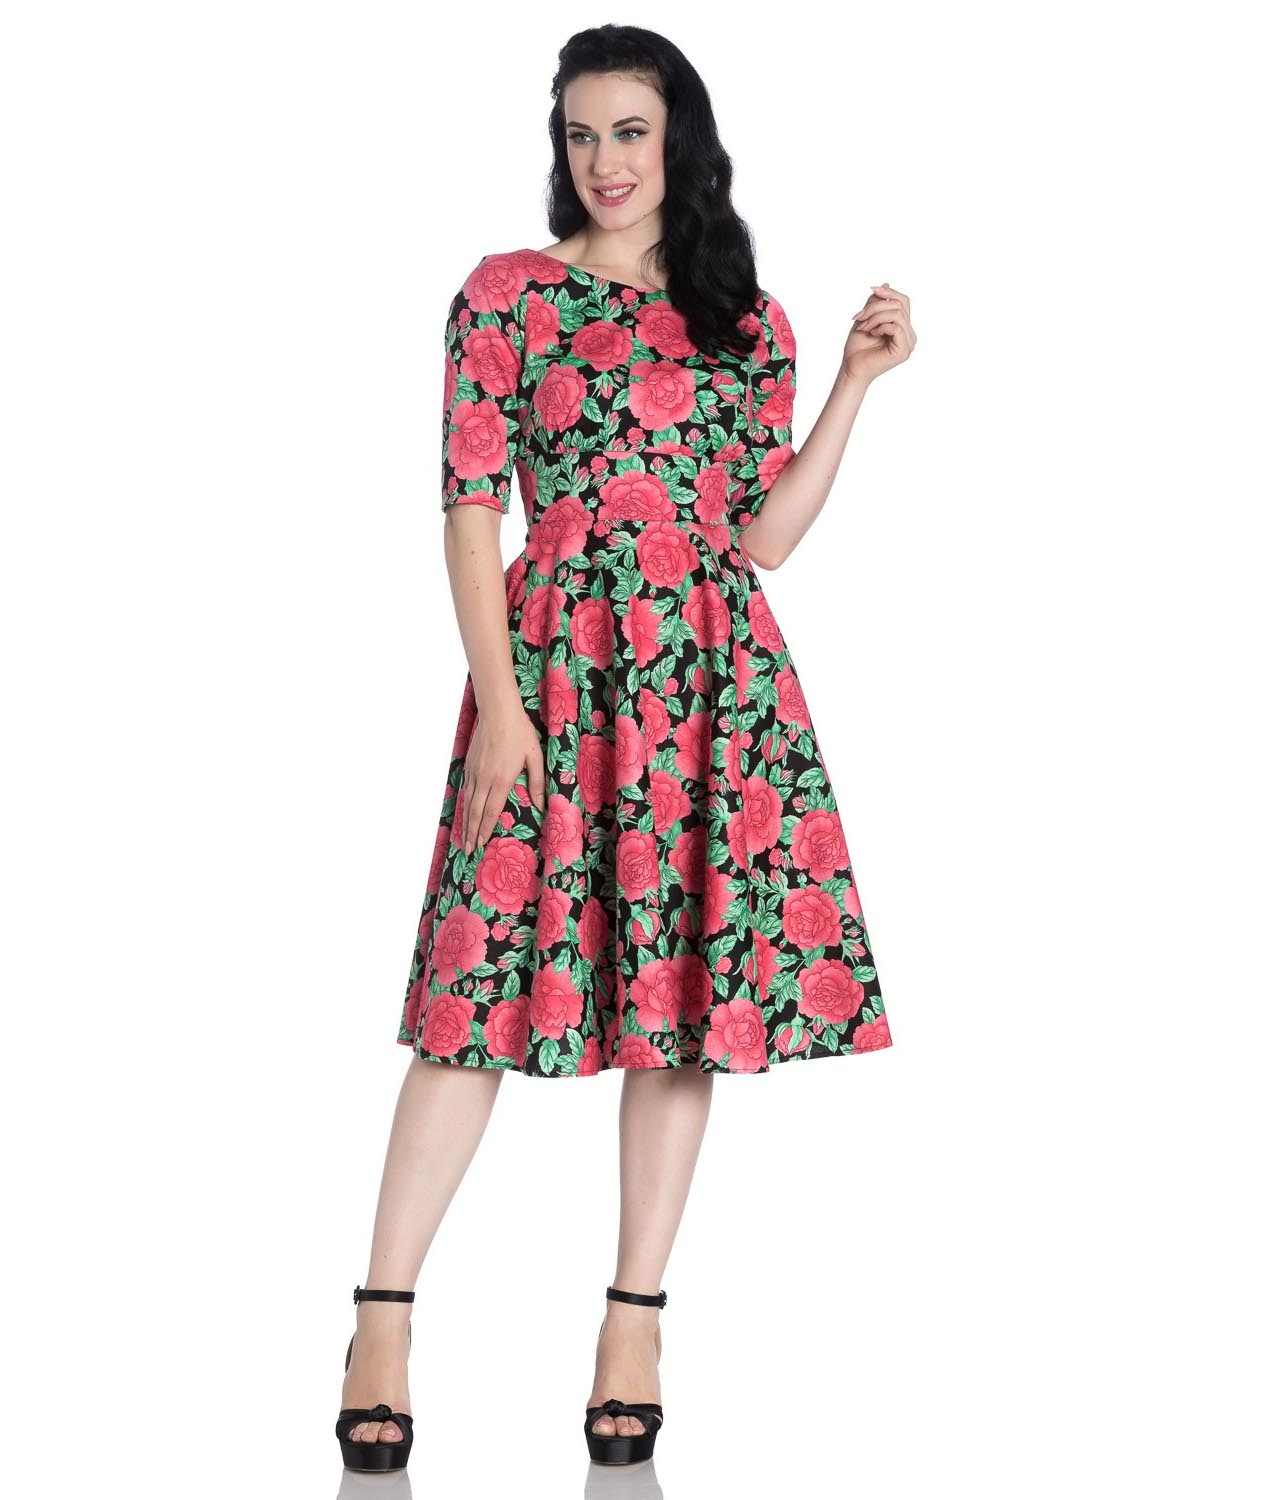 Hell-Bunny-40s-50s-Black-Pin-Up-Vintage-Dress-DARCY-Pink-Roses-All-Sizes thumbnail 7